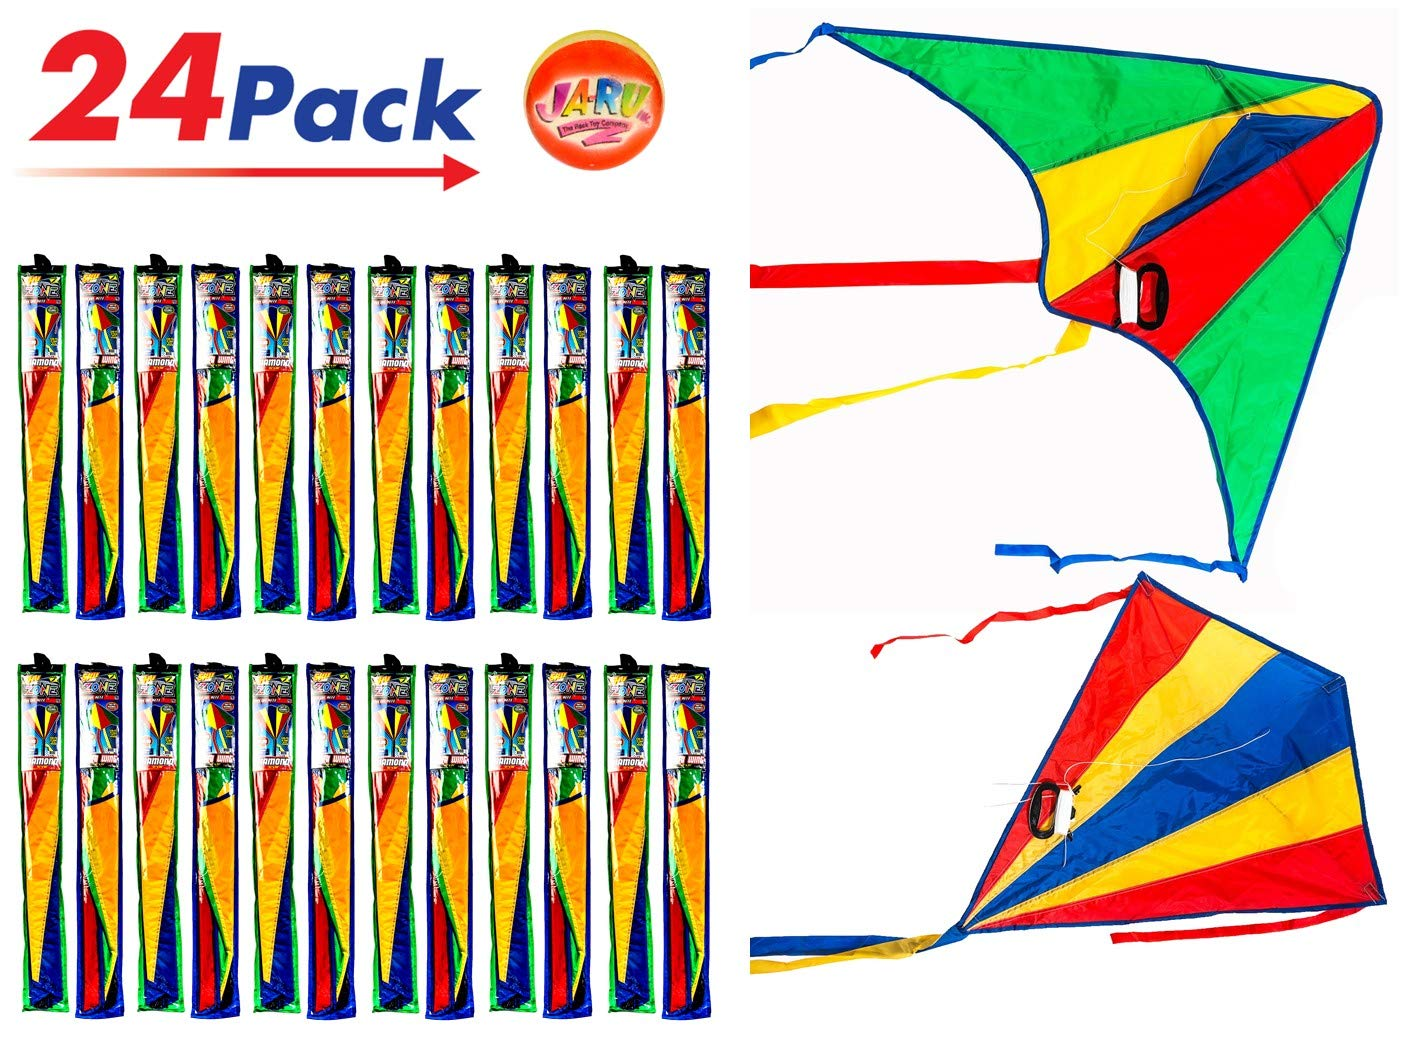 2CHILL Delta Kite Nylon Large in Bulk (Pack of 24) Plus 1 Bouncy Ball - Easy to Assemble, Launch, Fly - Premium Quality 9877-24p by 2CHILL